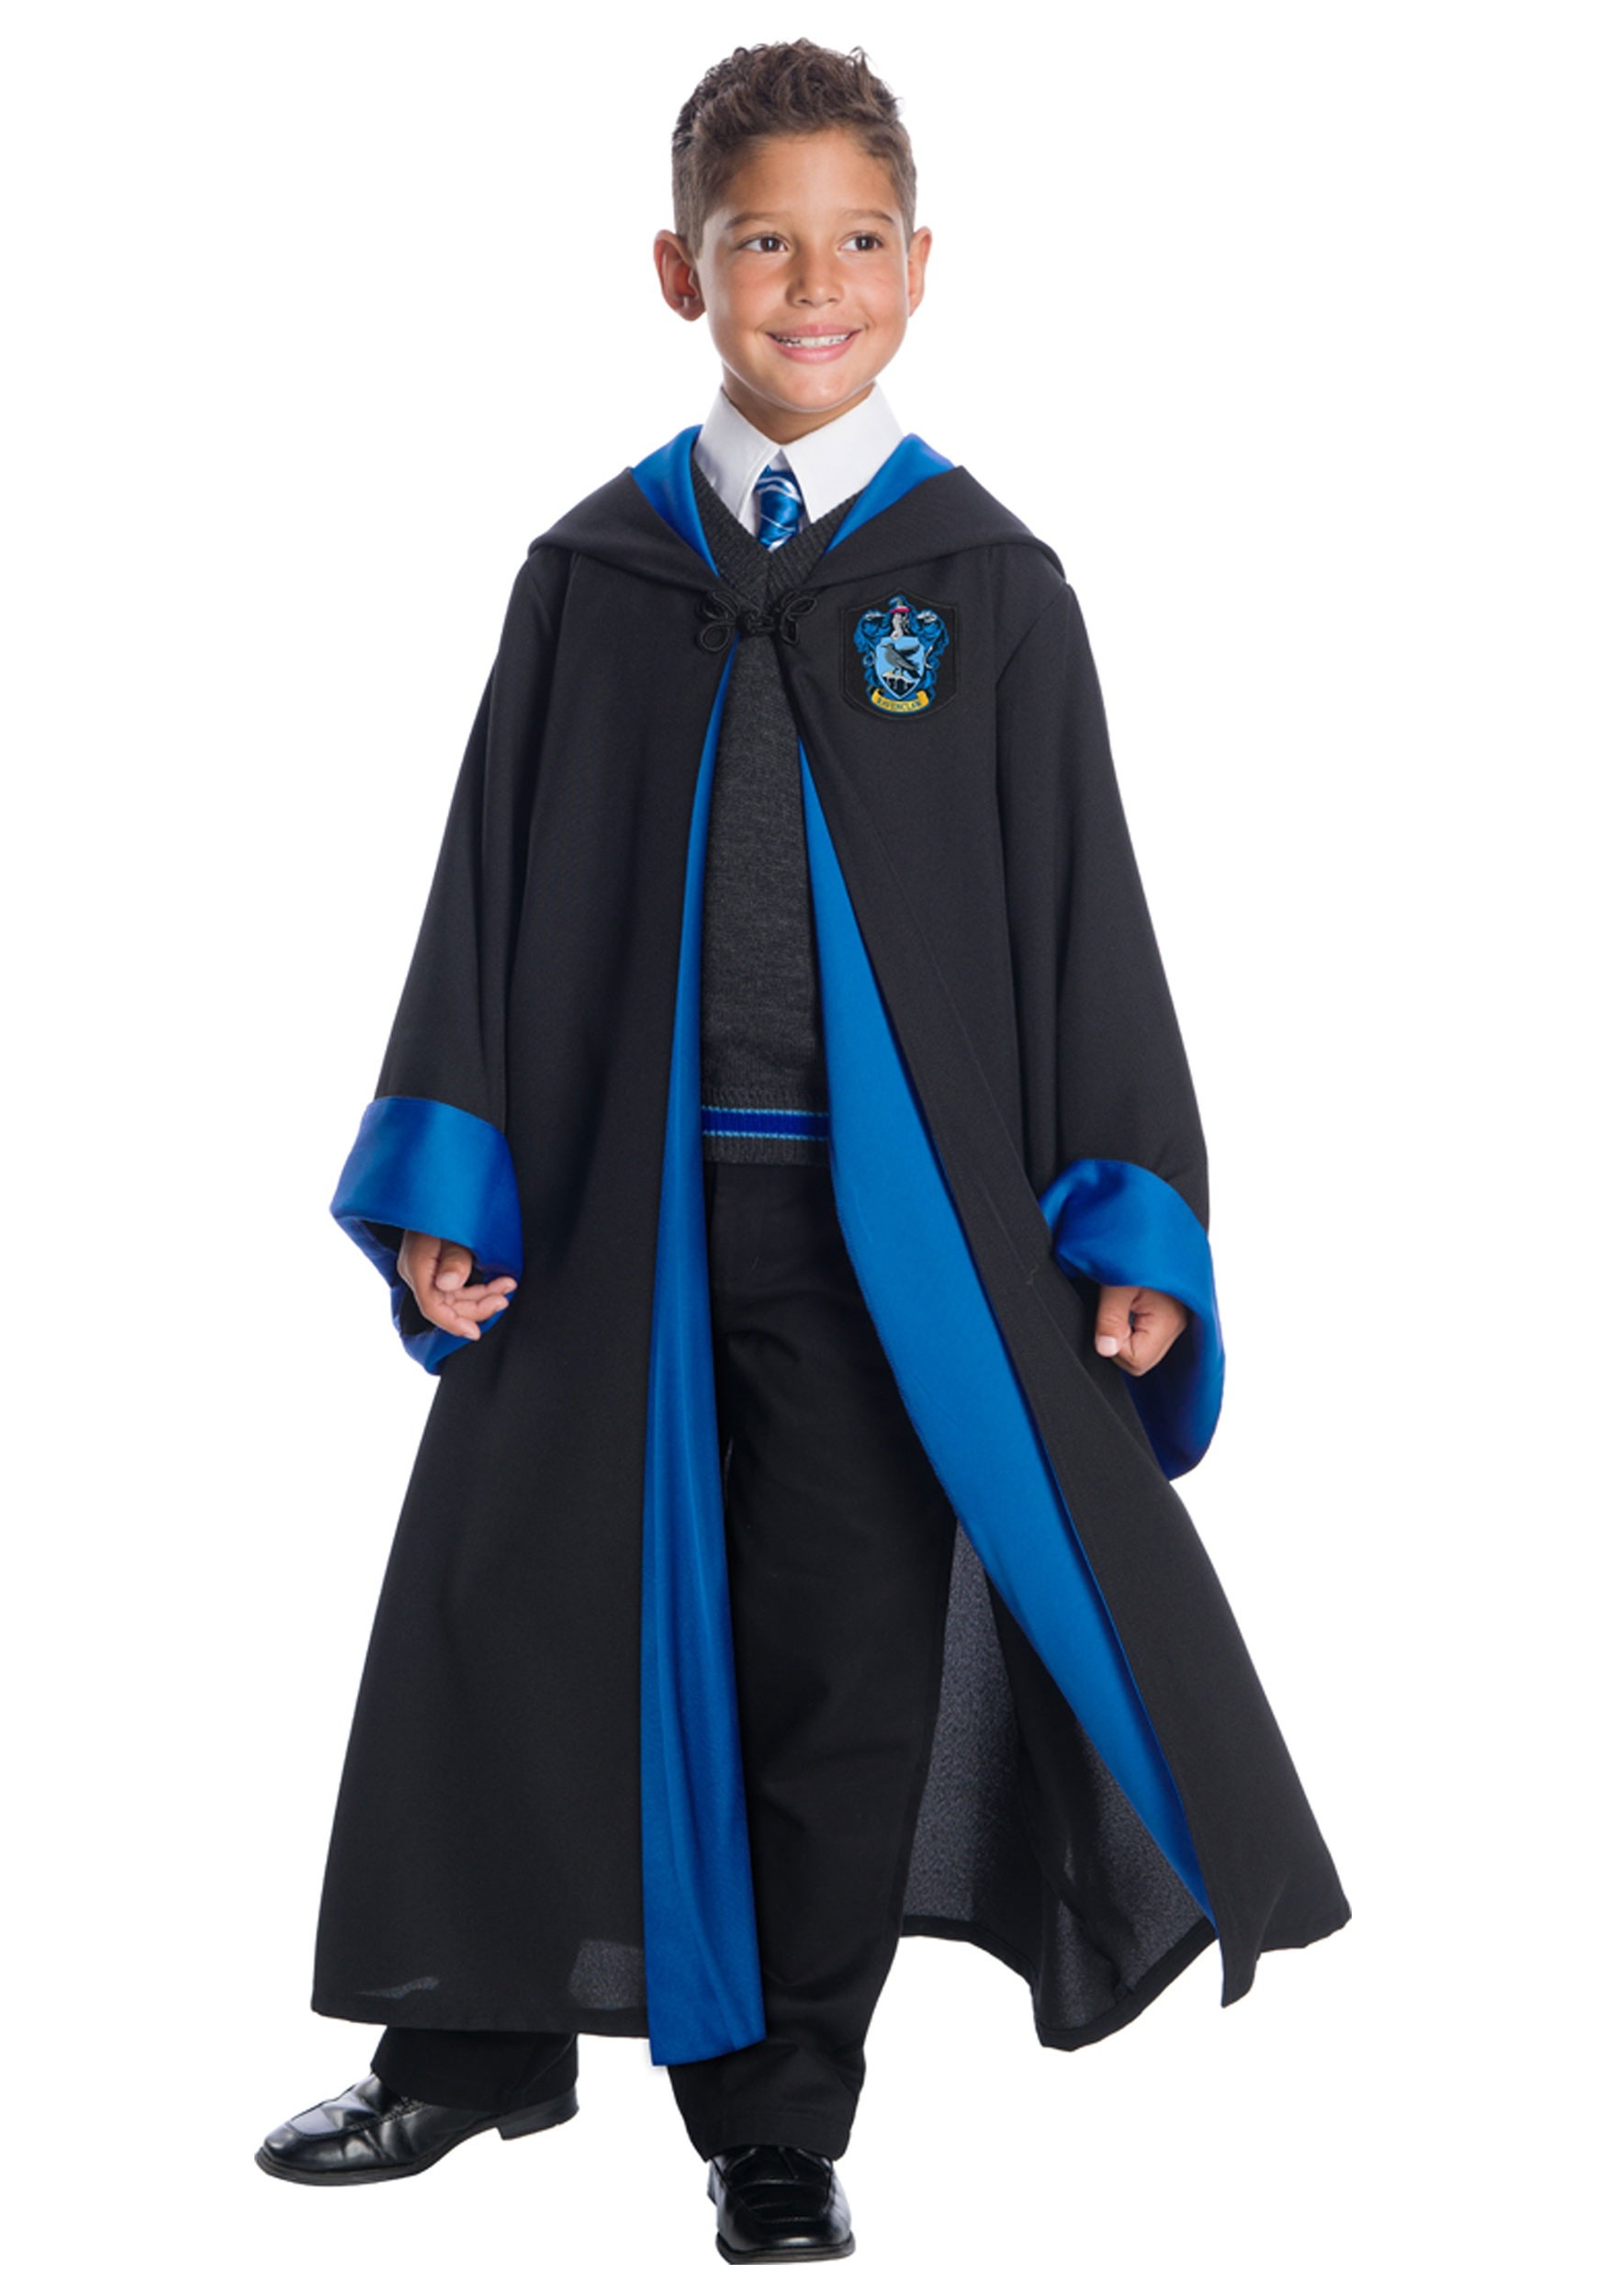 f9b319d252b4 Deluxe Ravenclaw Student Costume for Kids